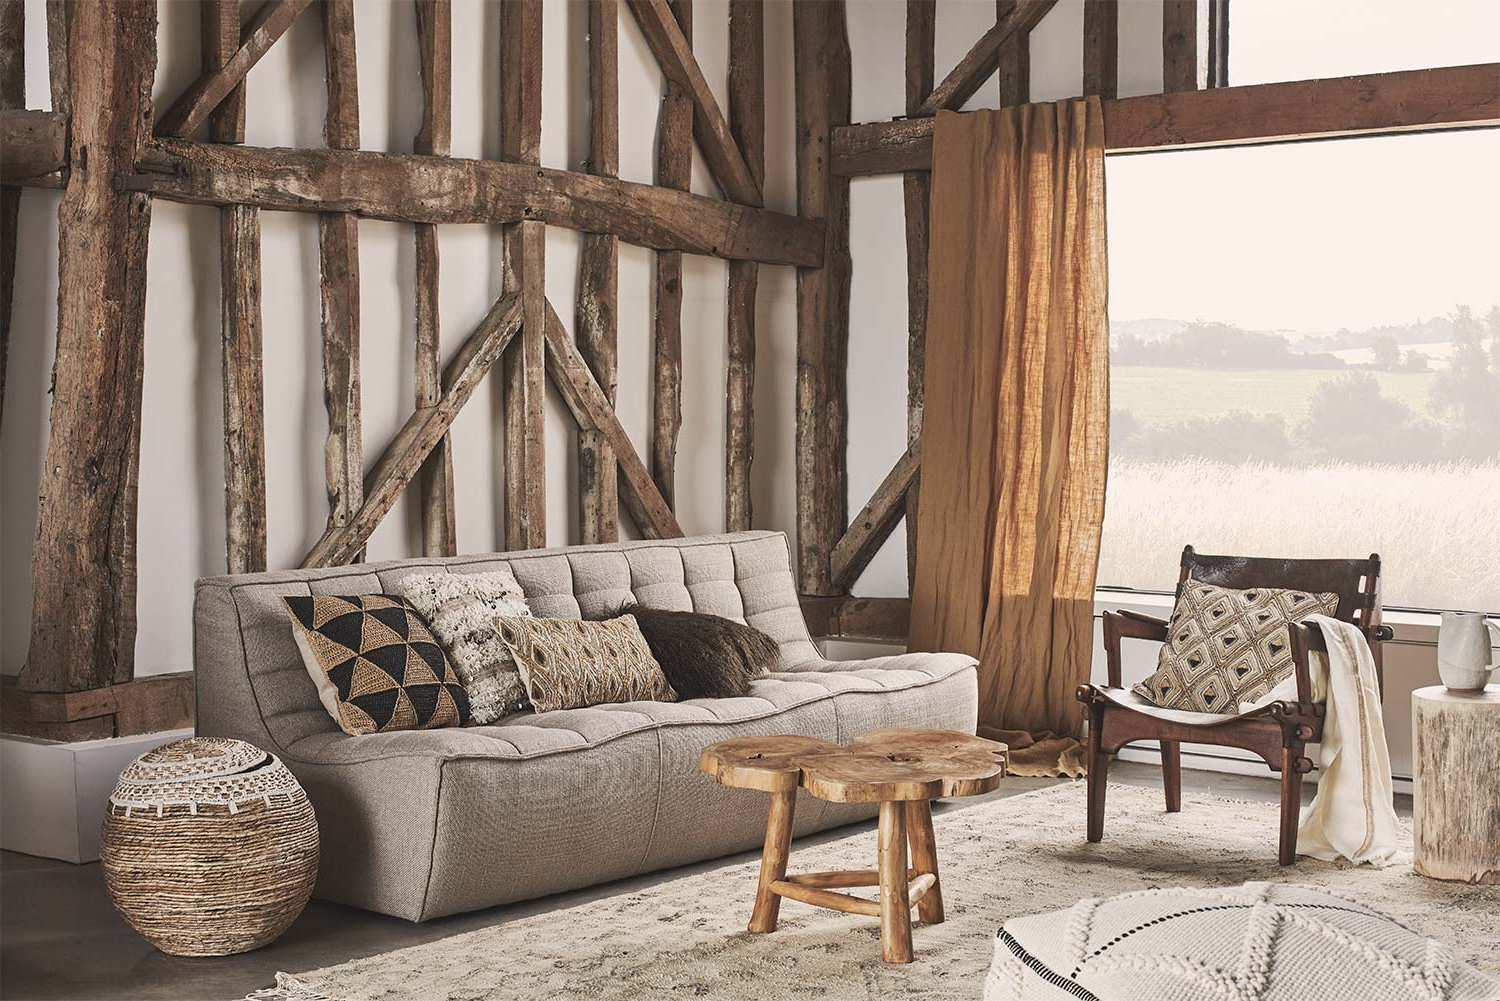 Plaid sofa Zara Home 4pde the Raw Edit Campaign Aw18 Editorials Zara Home United Kingdom